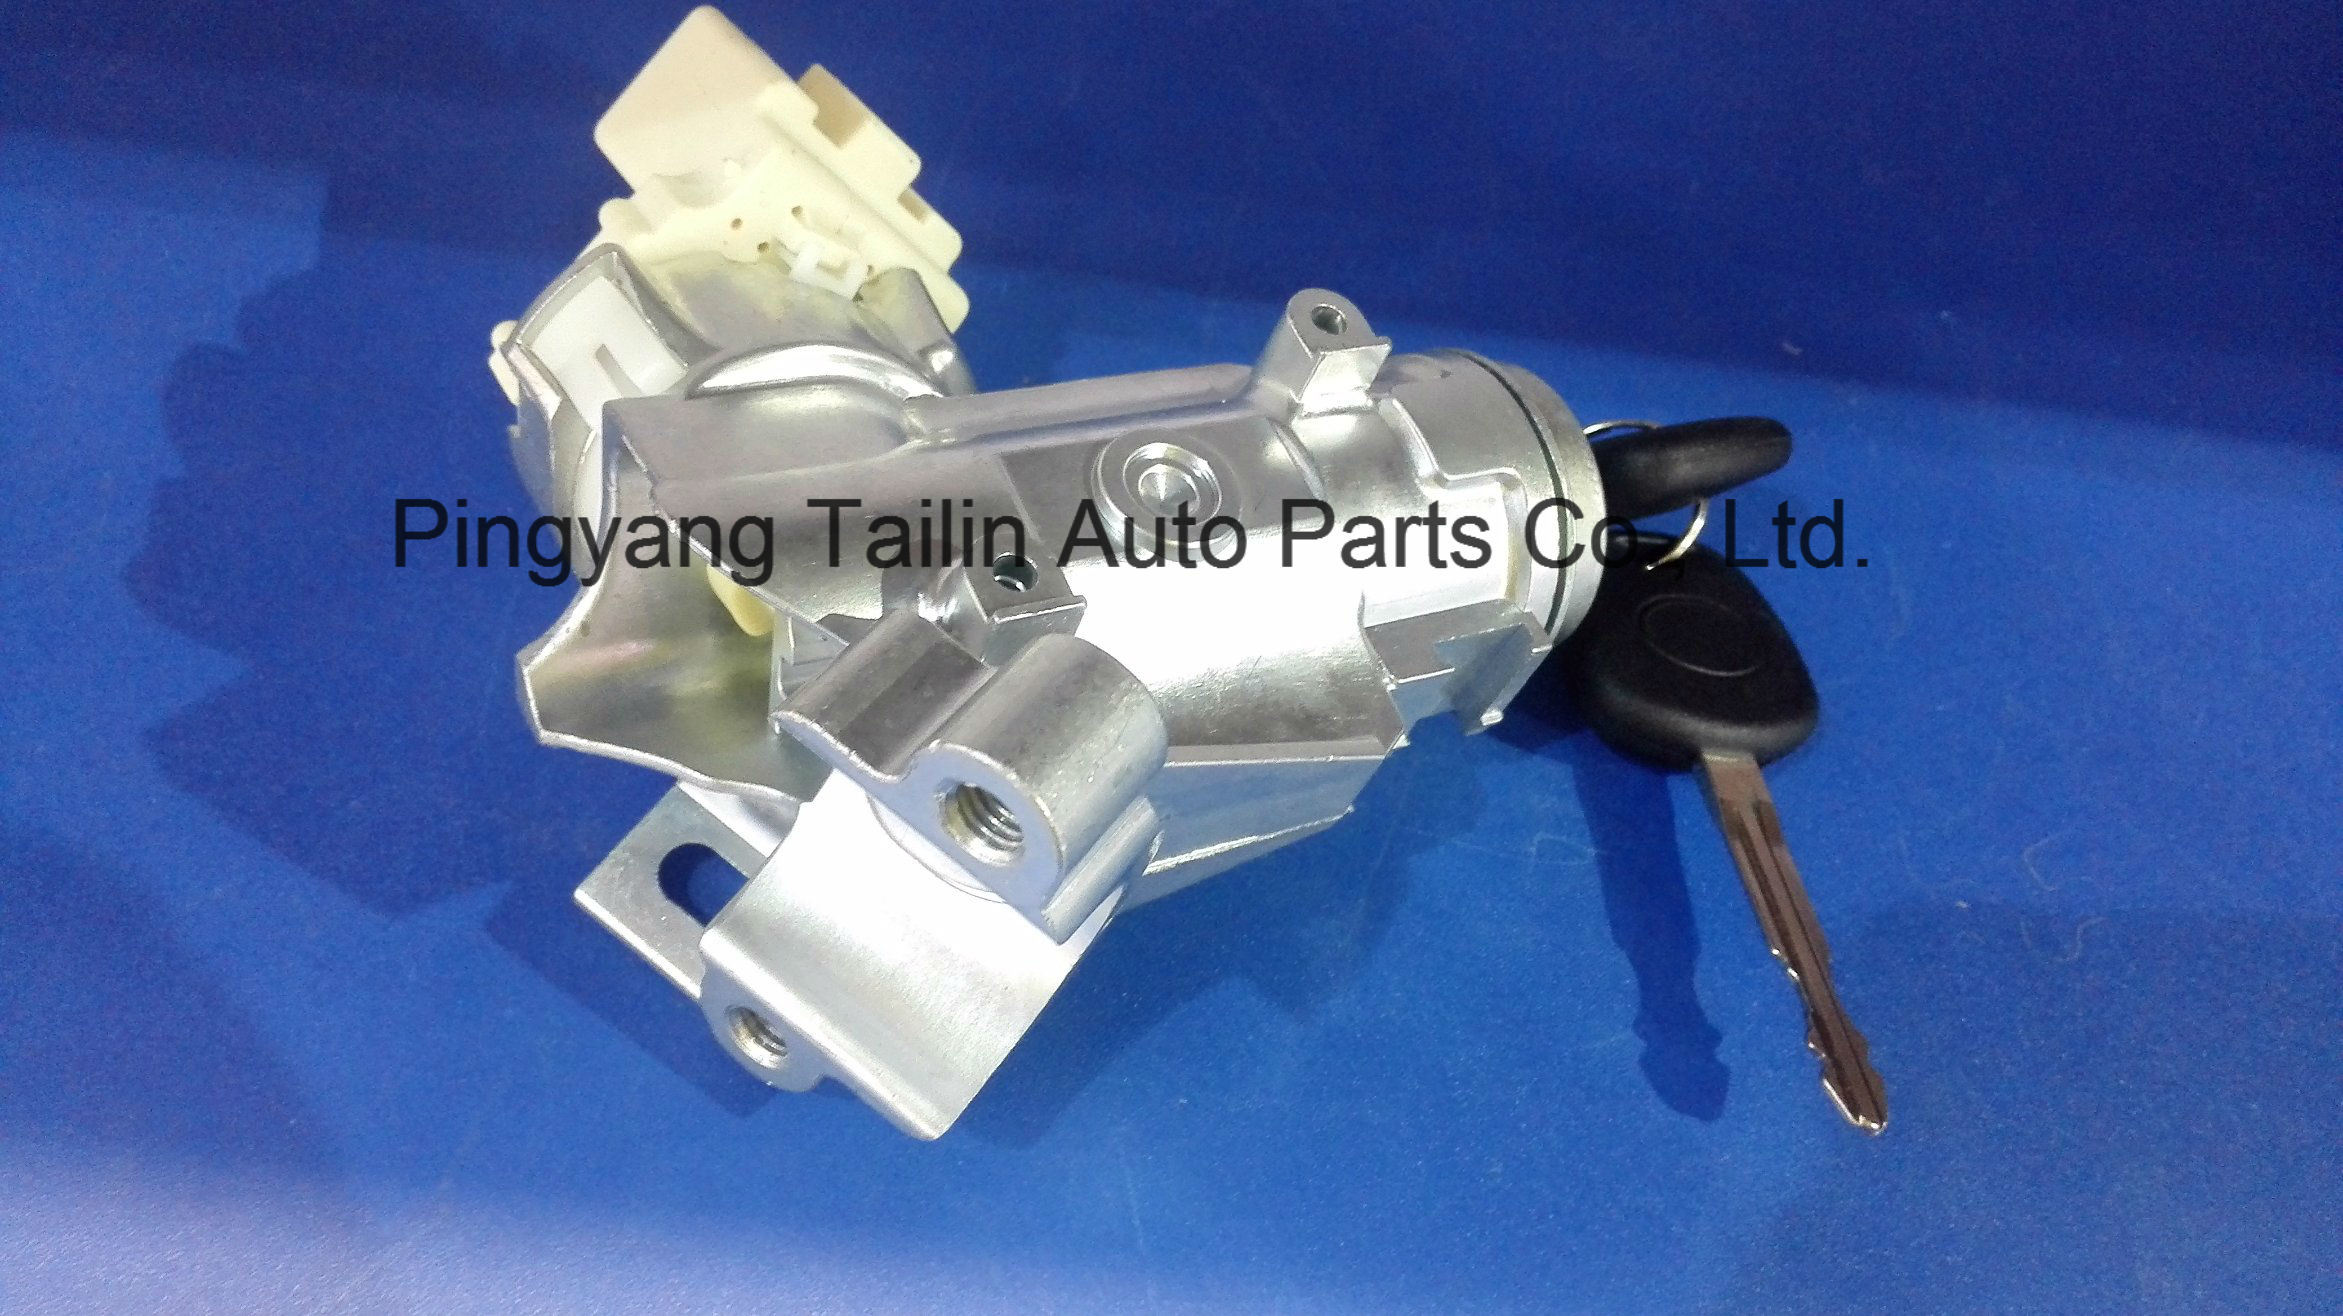 Ignition Switch for Toyota Innova